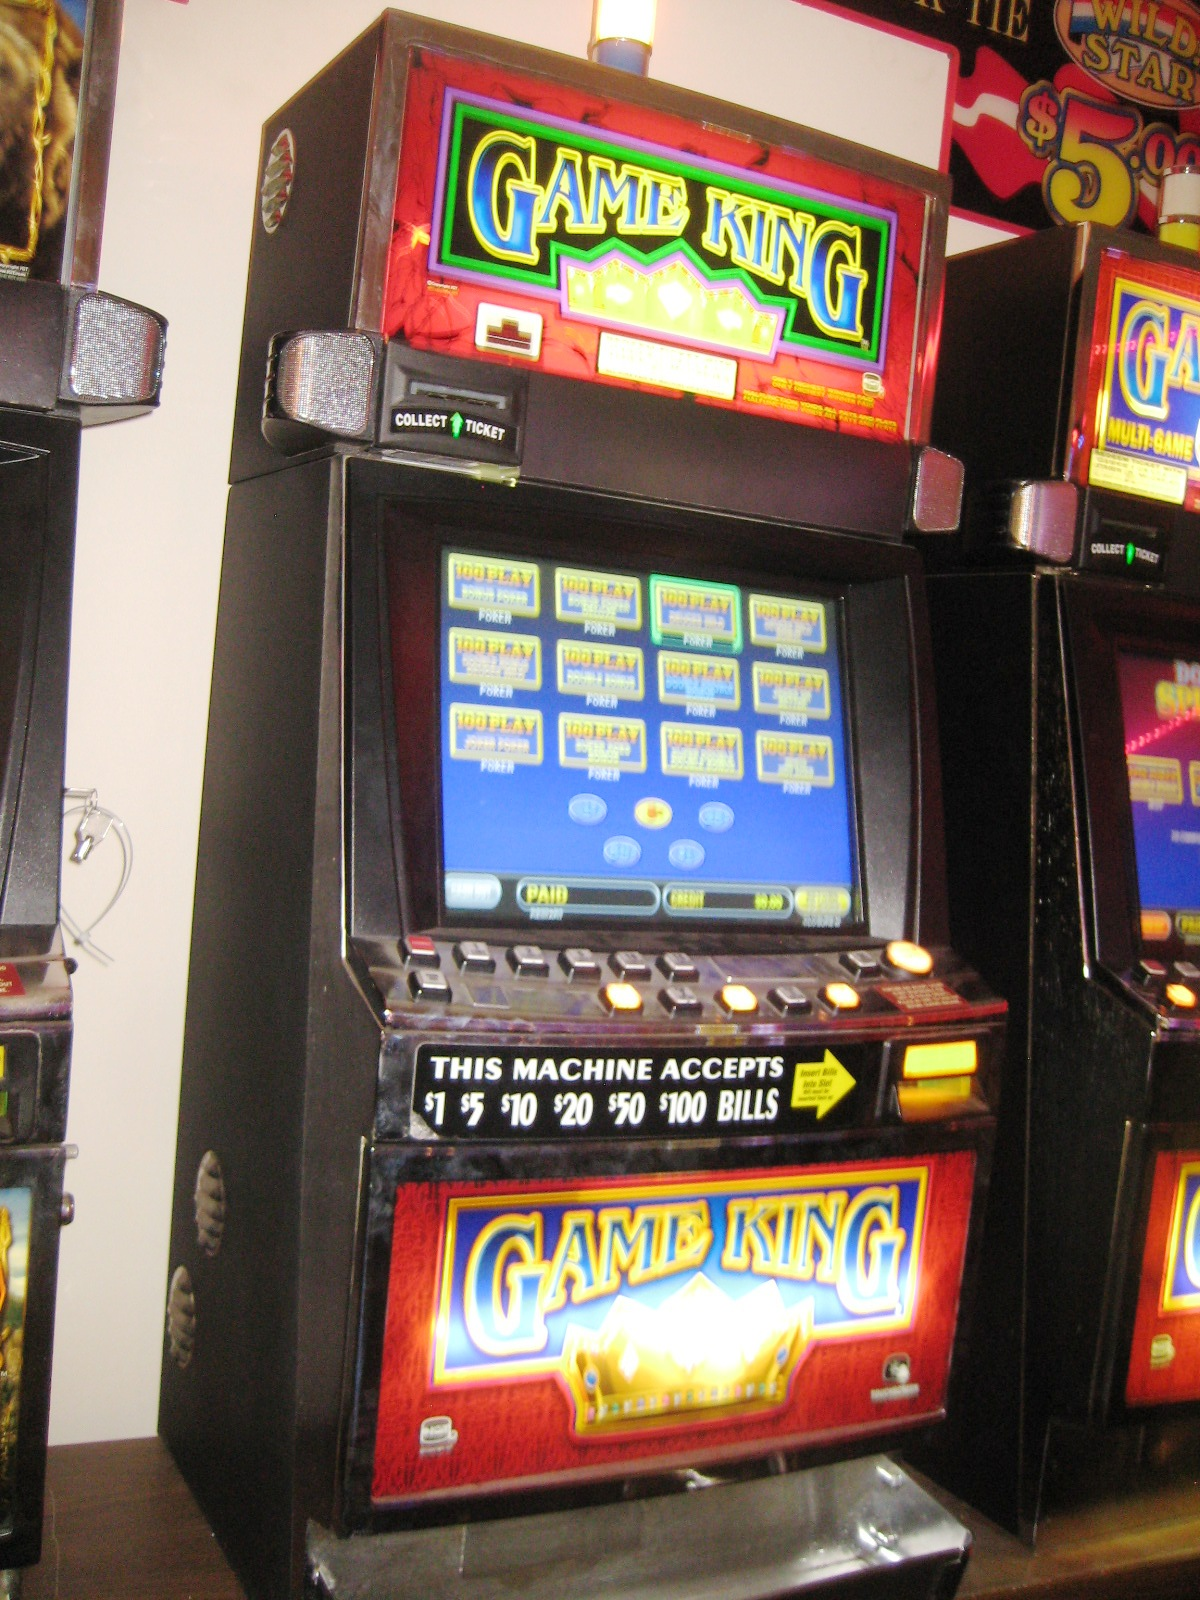 Roulette free video poker casino games bet365 classic site fotos